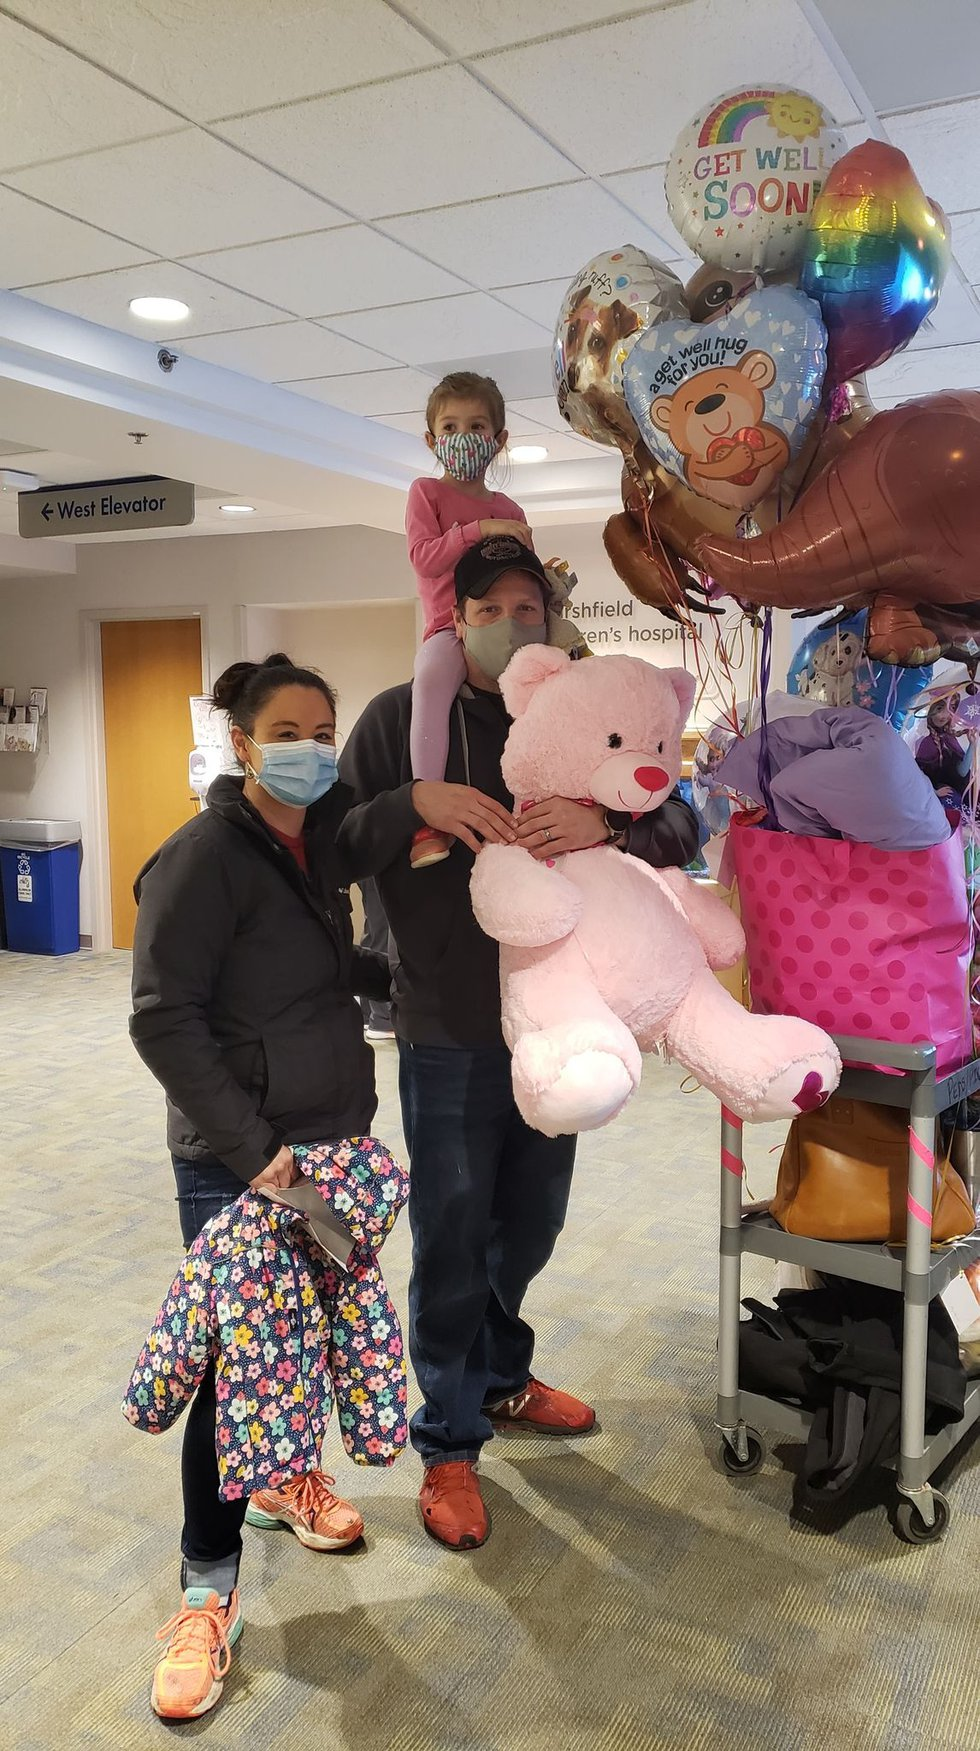 Lily Lavin is discharged from hospital after MIS-C diagnosis.